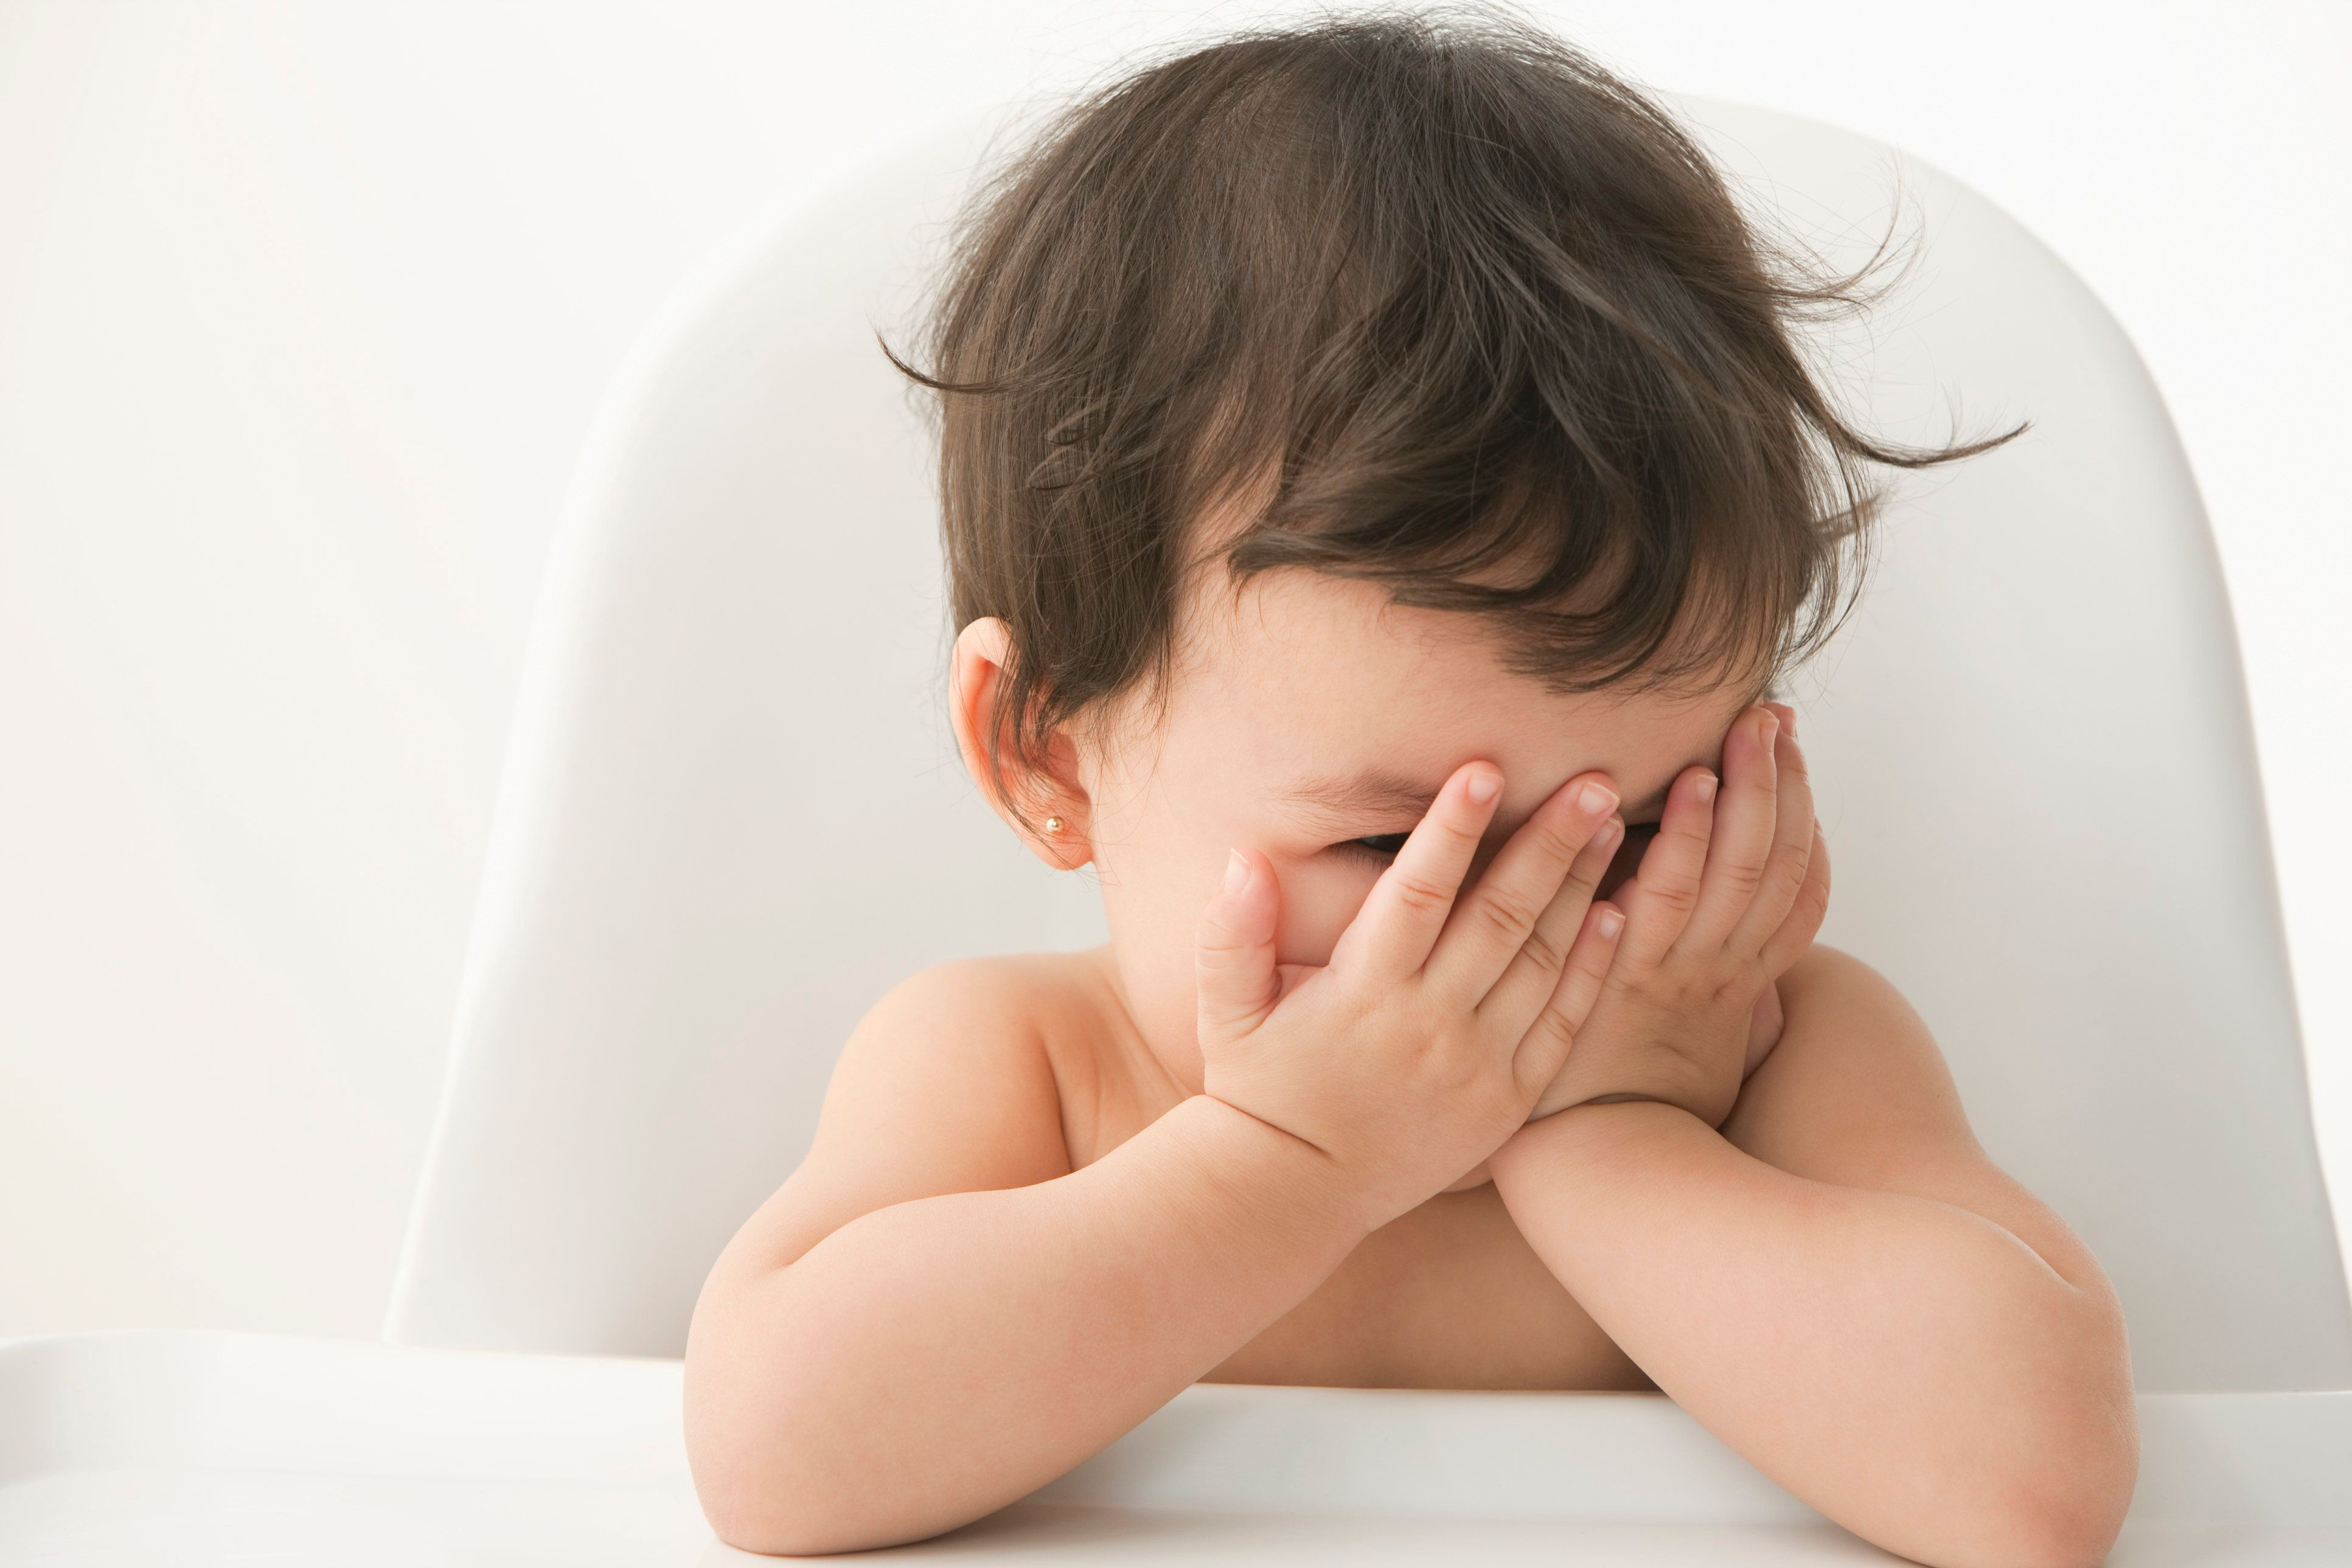 Reddit Users Discuss The Most Ridiculous Baby Names They've Ever